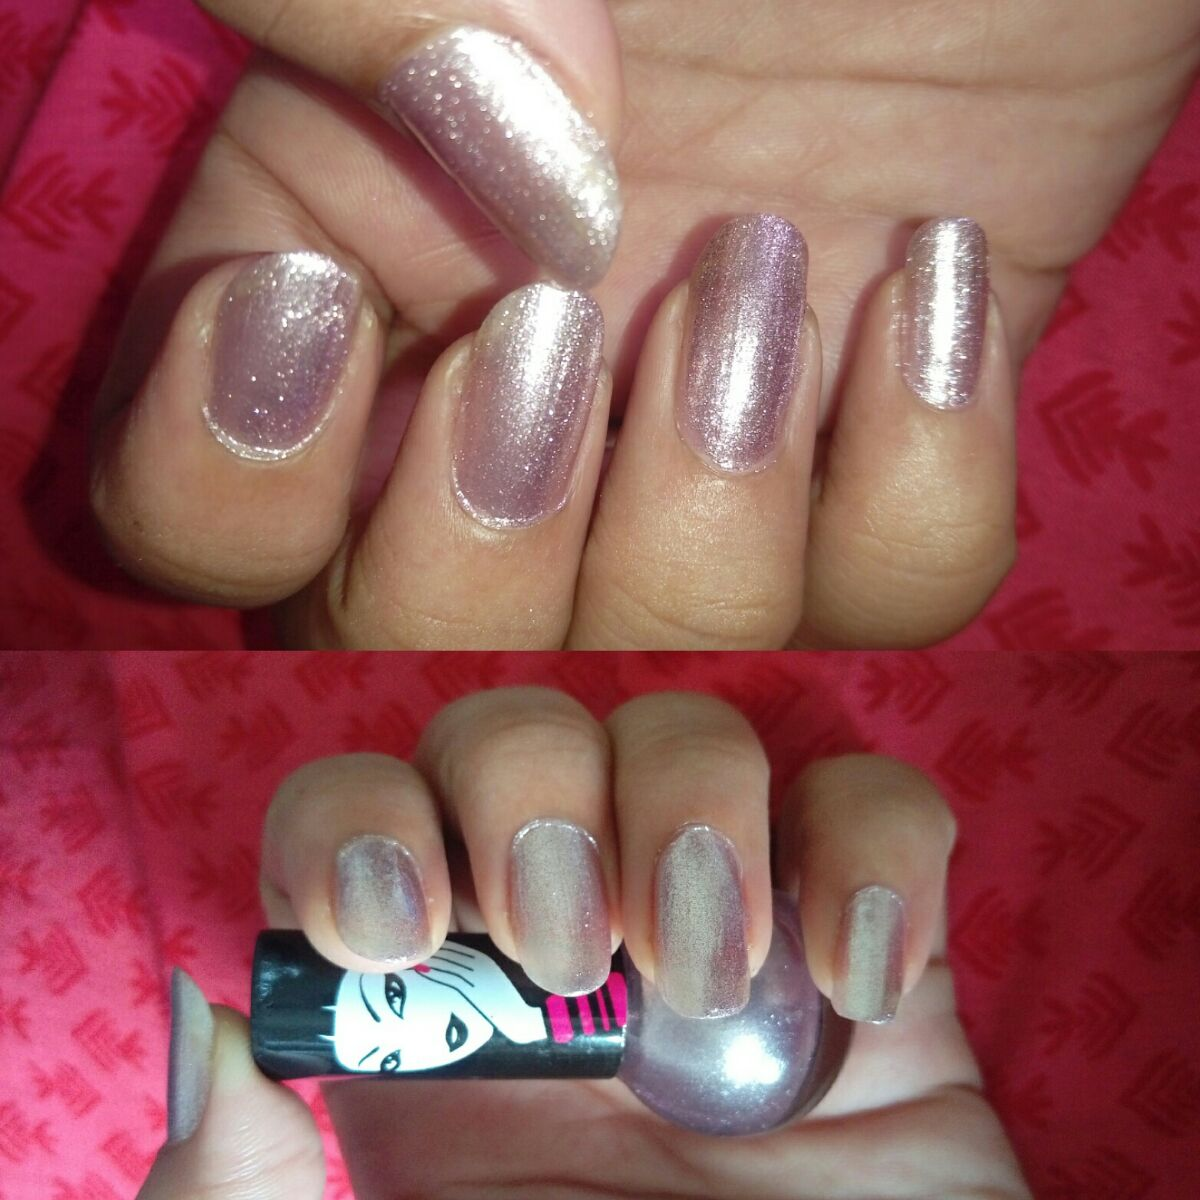 Elle18 Nail Pops Shade No 08 Review, Photos- NOTD, Glittery Shimmer ...